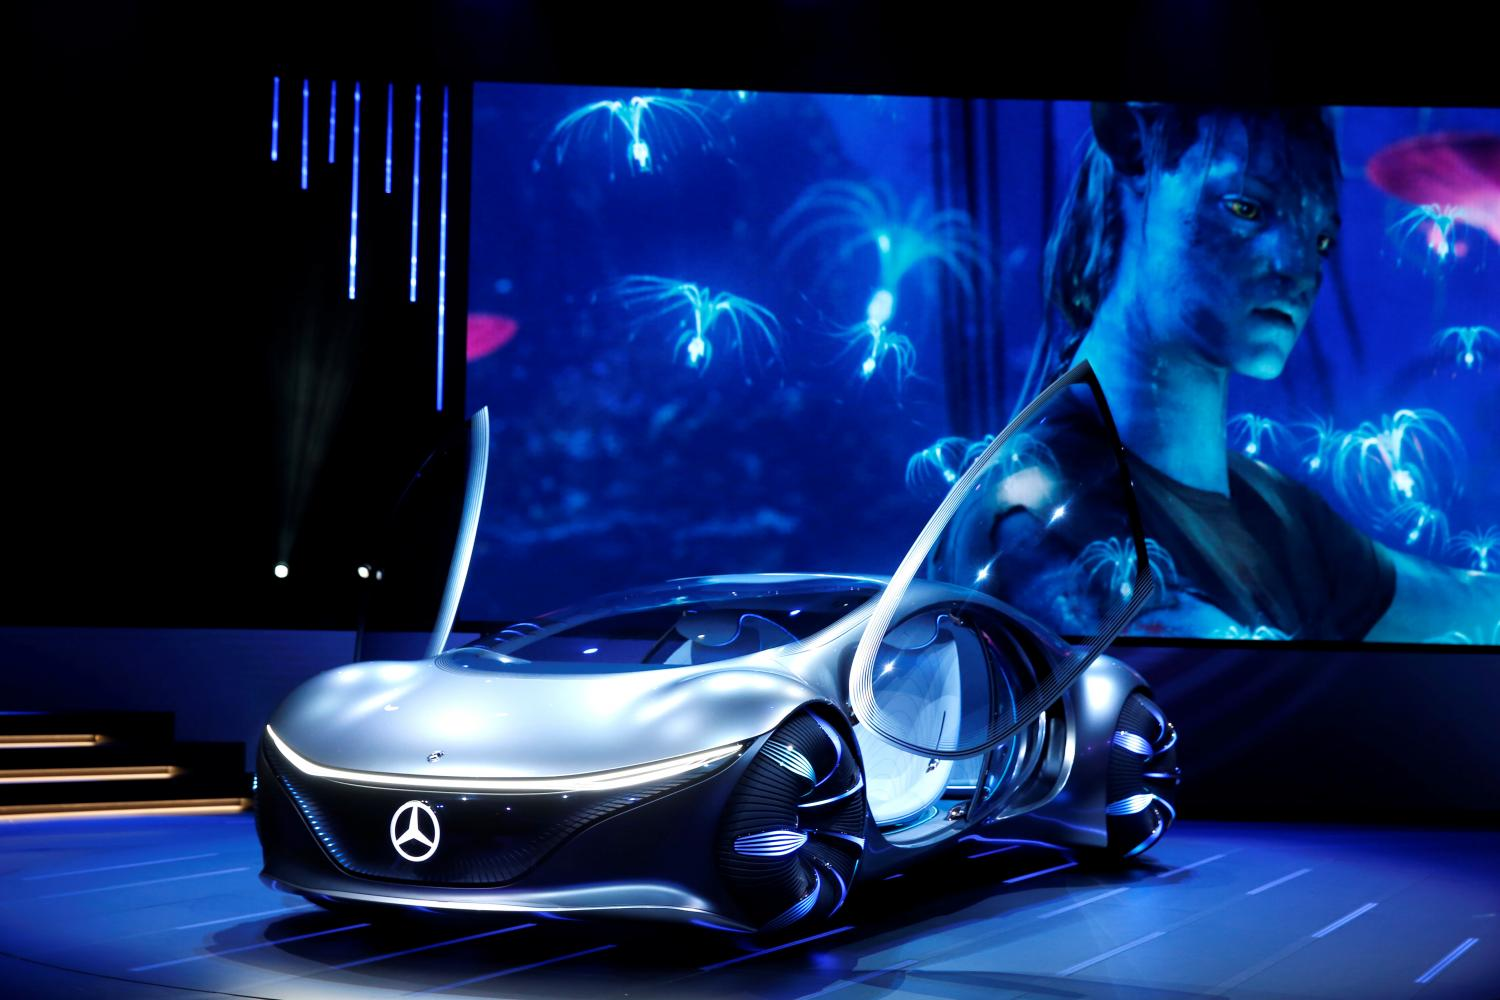 Avatar-themed concept car The Mercedes-Benz Vision AVTR concept car, inspired by the Avatar movies, is displayed after an unveiling at a Daimler keynote address during the 2020 CES in Las Vegas on Monday. (Reuters photo)